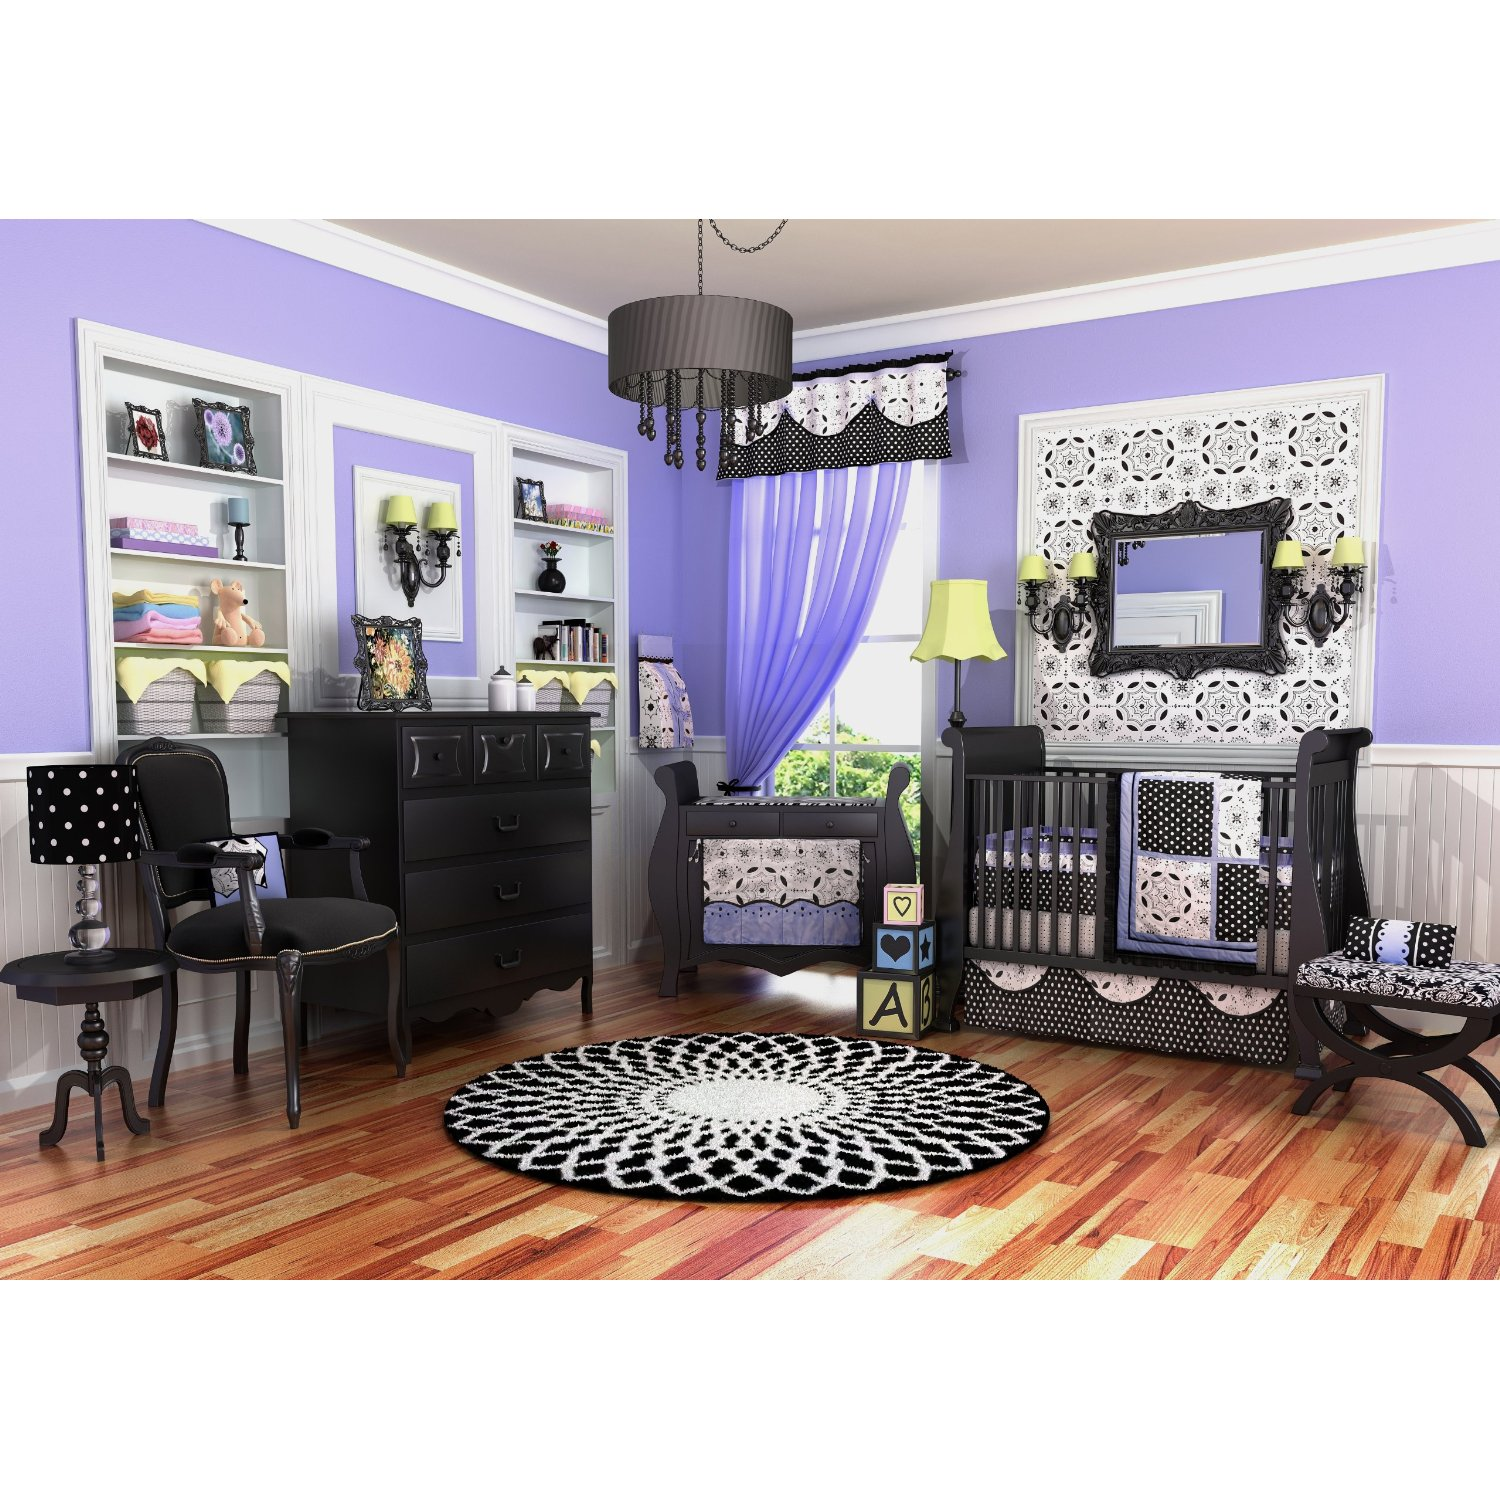 Nursery decorating ideas 5 unique looks for the new baby room honey lime - Purple black and white room ideas ...